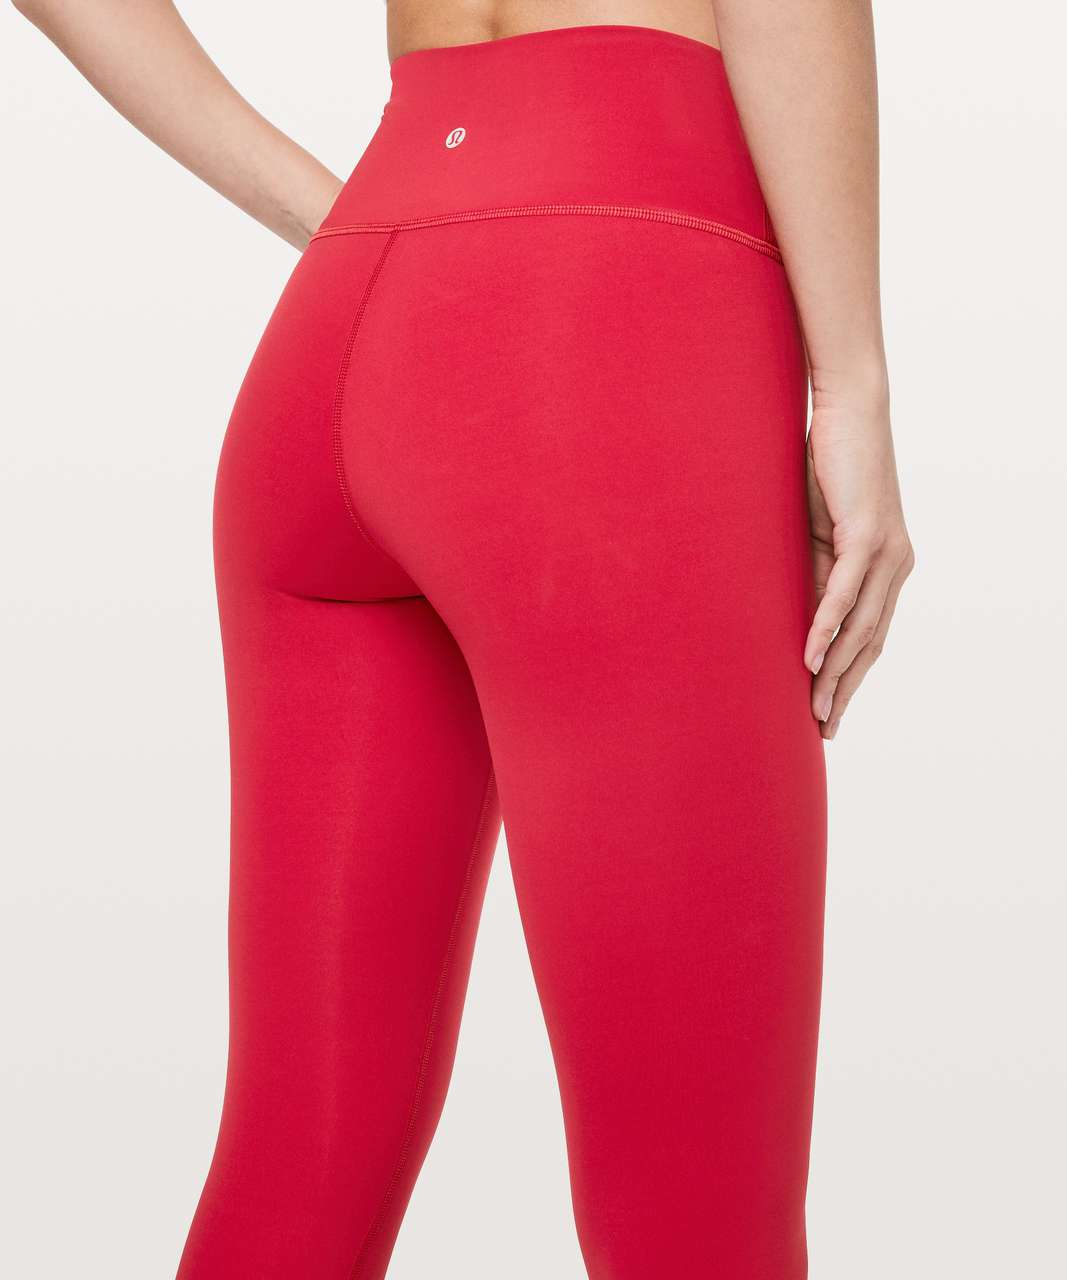 "Lululemon Wunder Under High-Rise 7/8 Tight *Full-On Luxtreme 25"" - Dark Red"